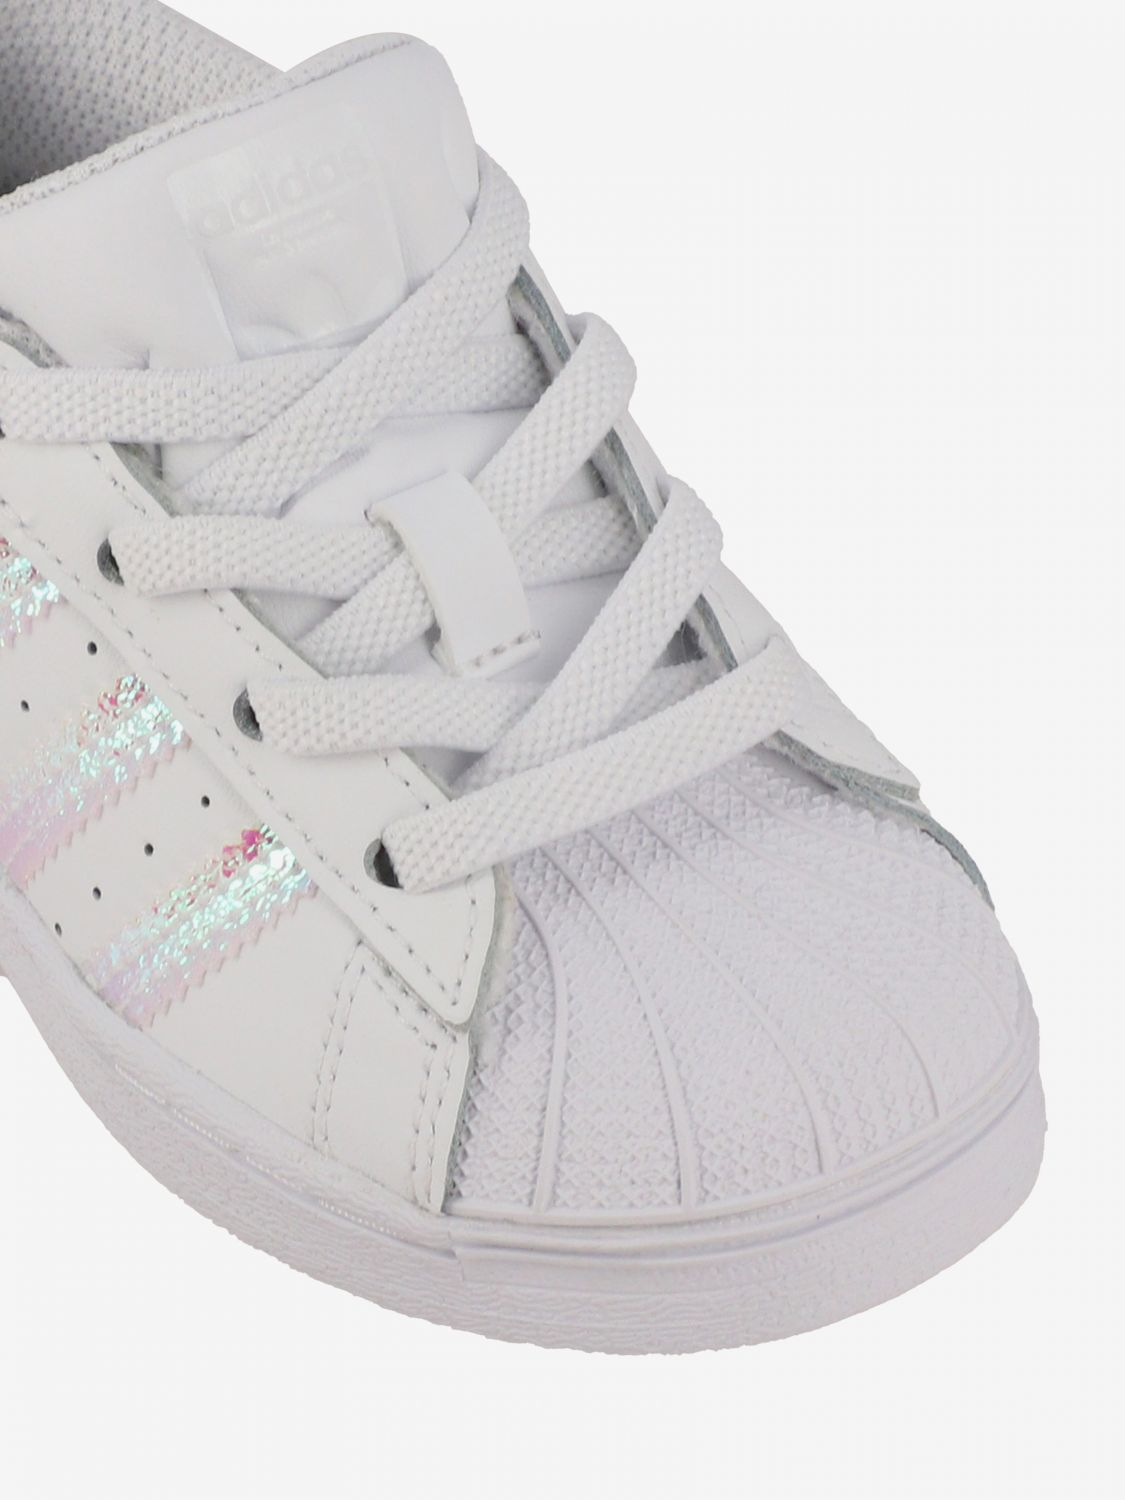 Shoes Adidas Originals: Superstar Adidas Originals sneakers in leather with logo white 3